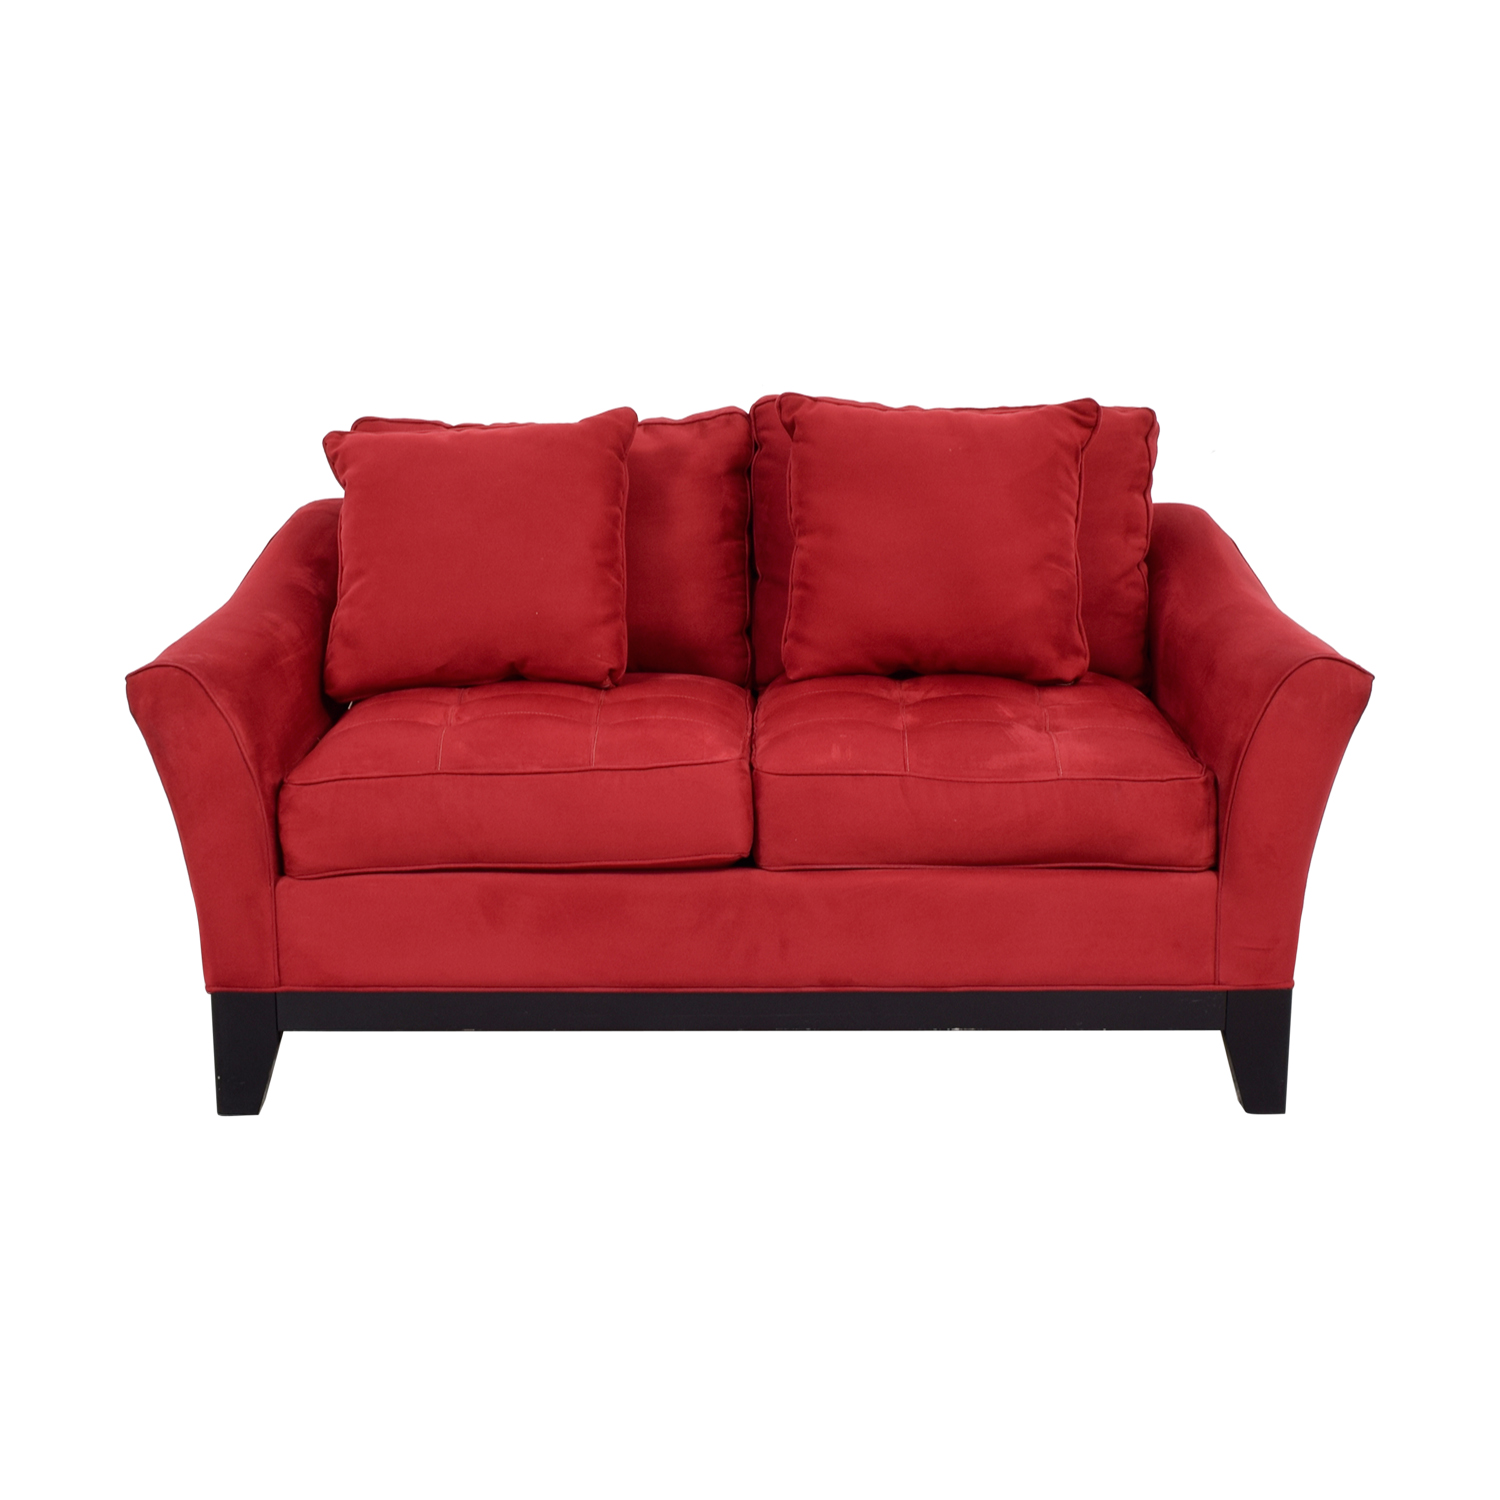 Raymour & Flanigan Red Microfiber Loveseat / Sofas